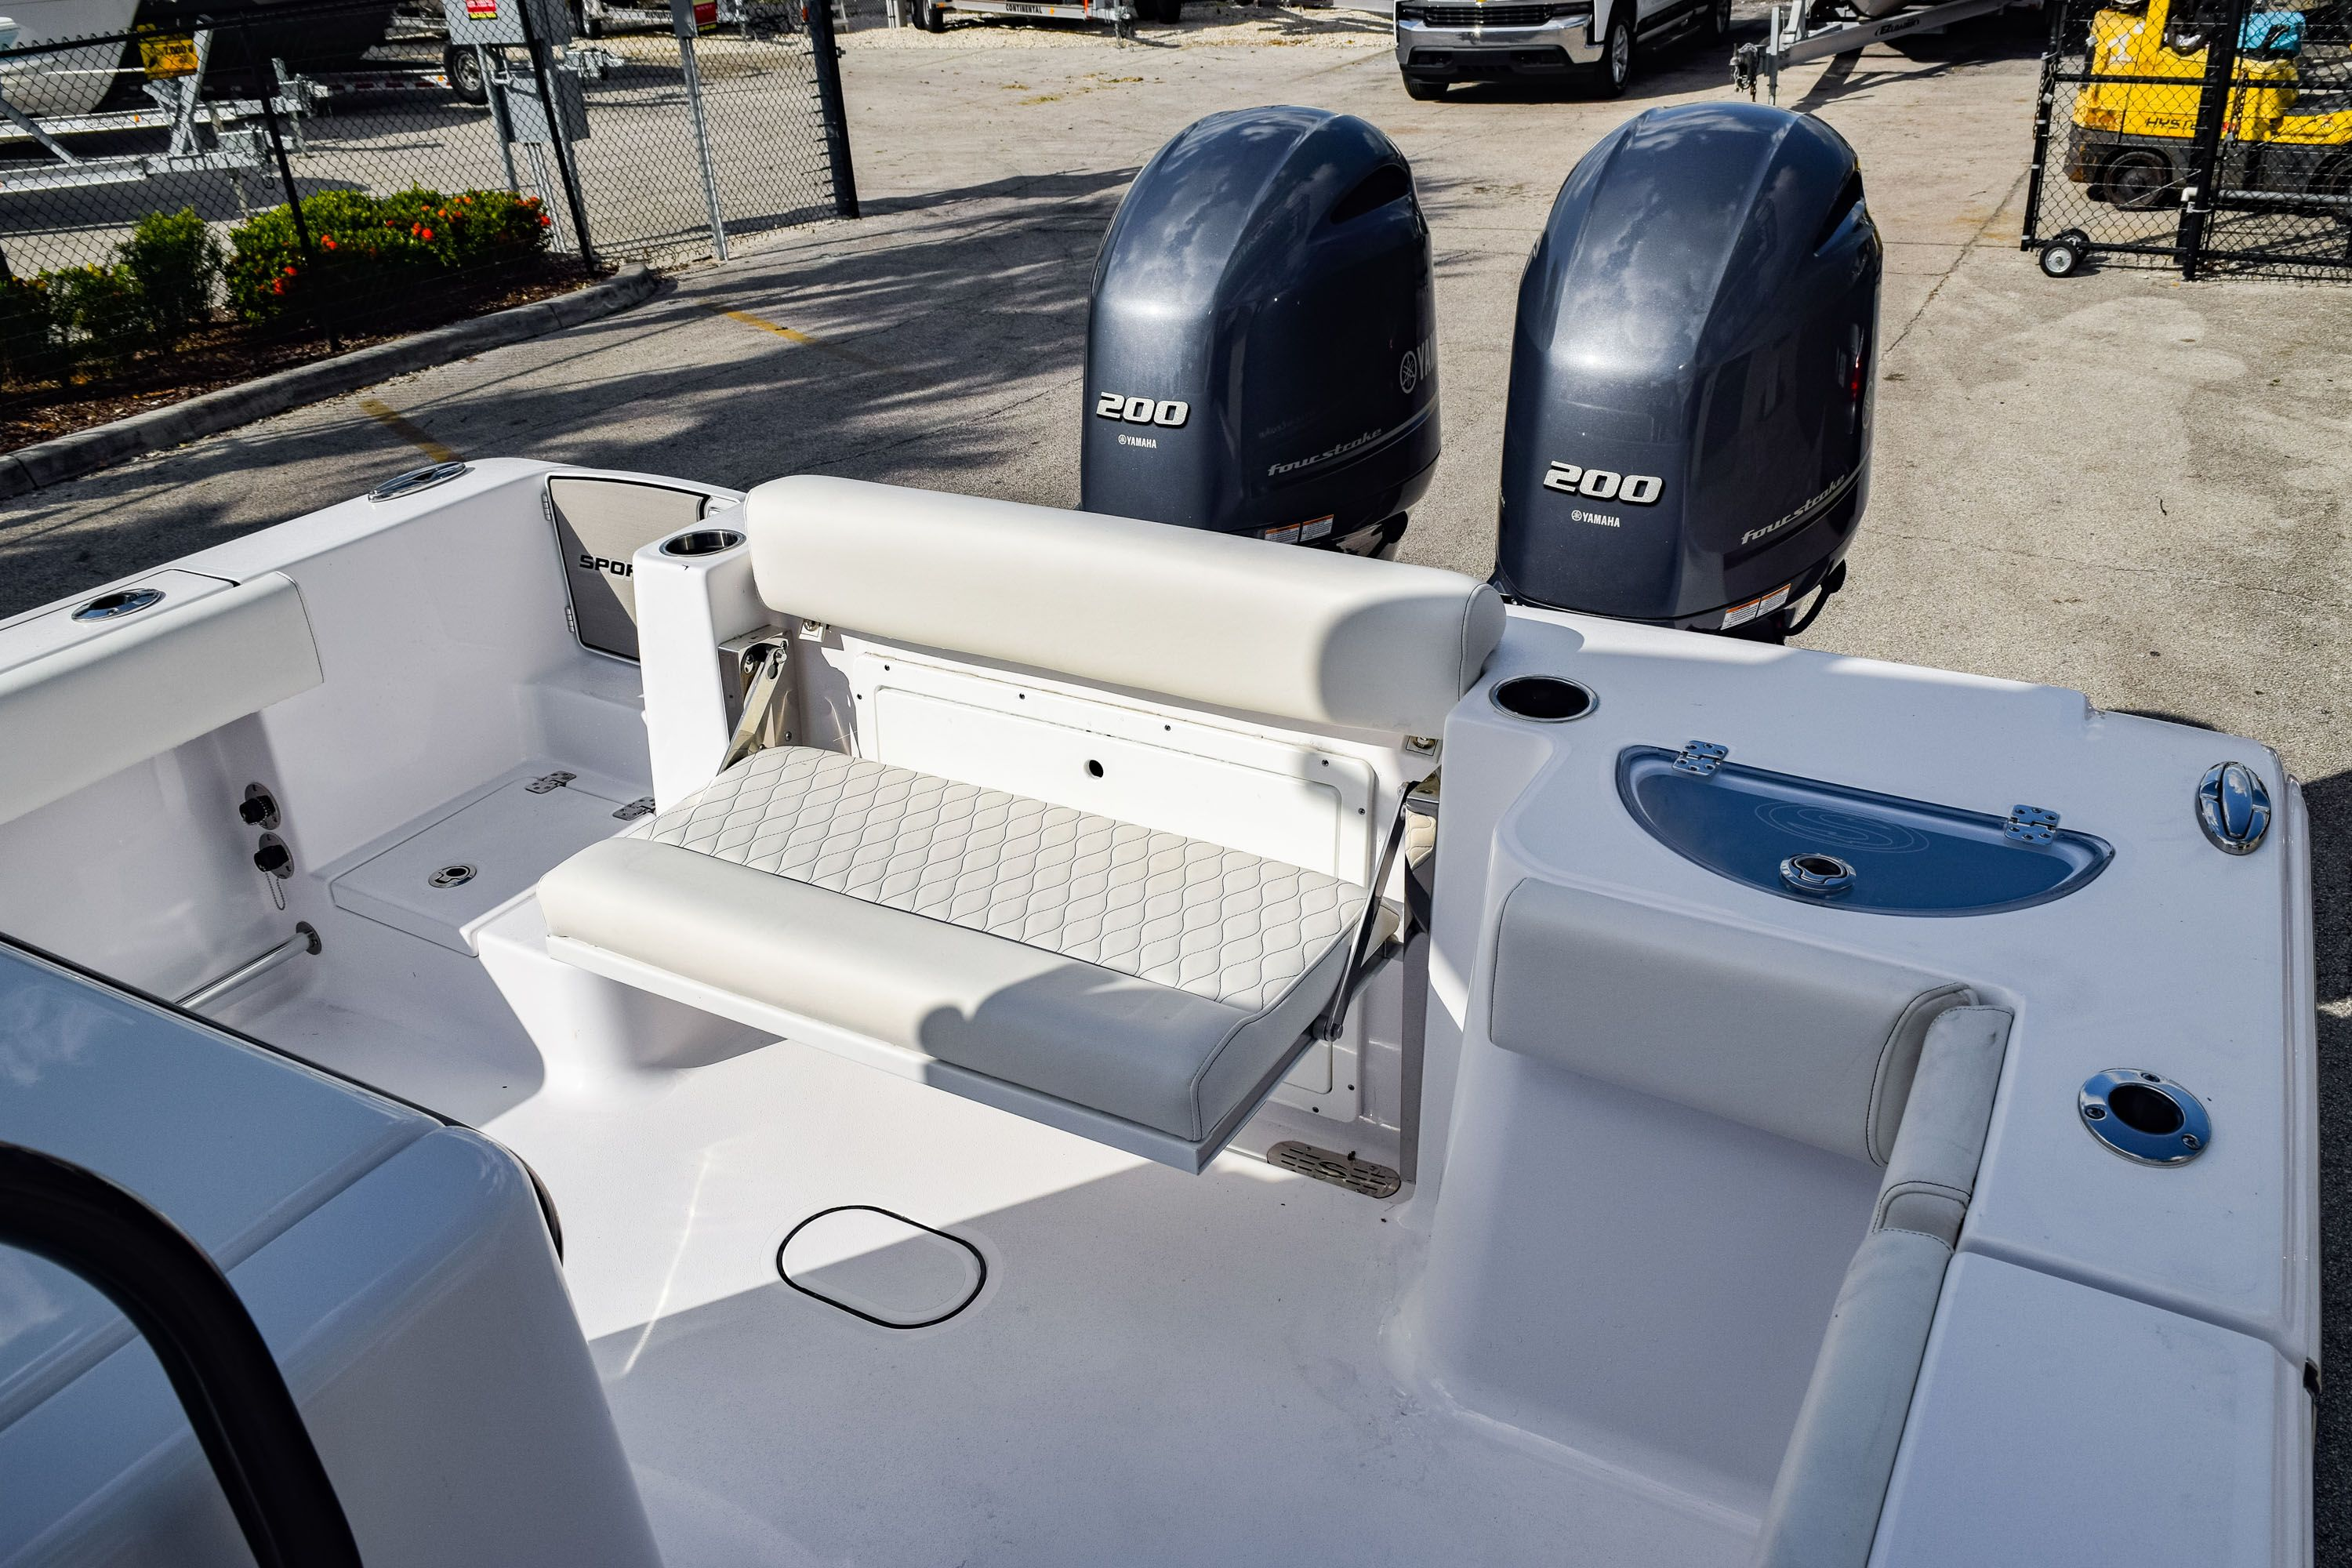 Thumbnail 9 for New 2020 Sportsman Open 282 Center Console boat for sale in Fort Lauderdale, FL